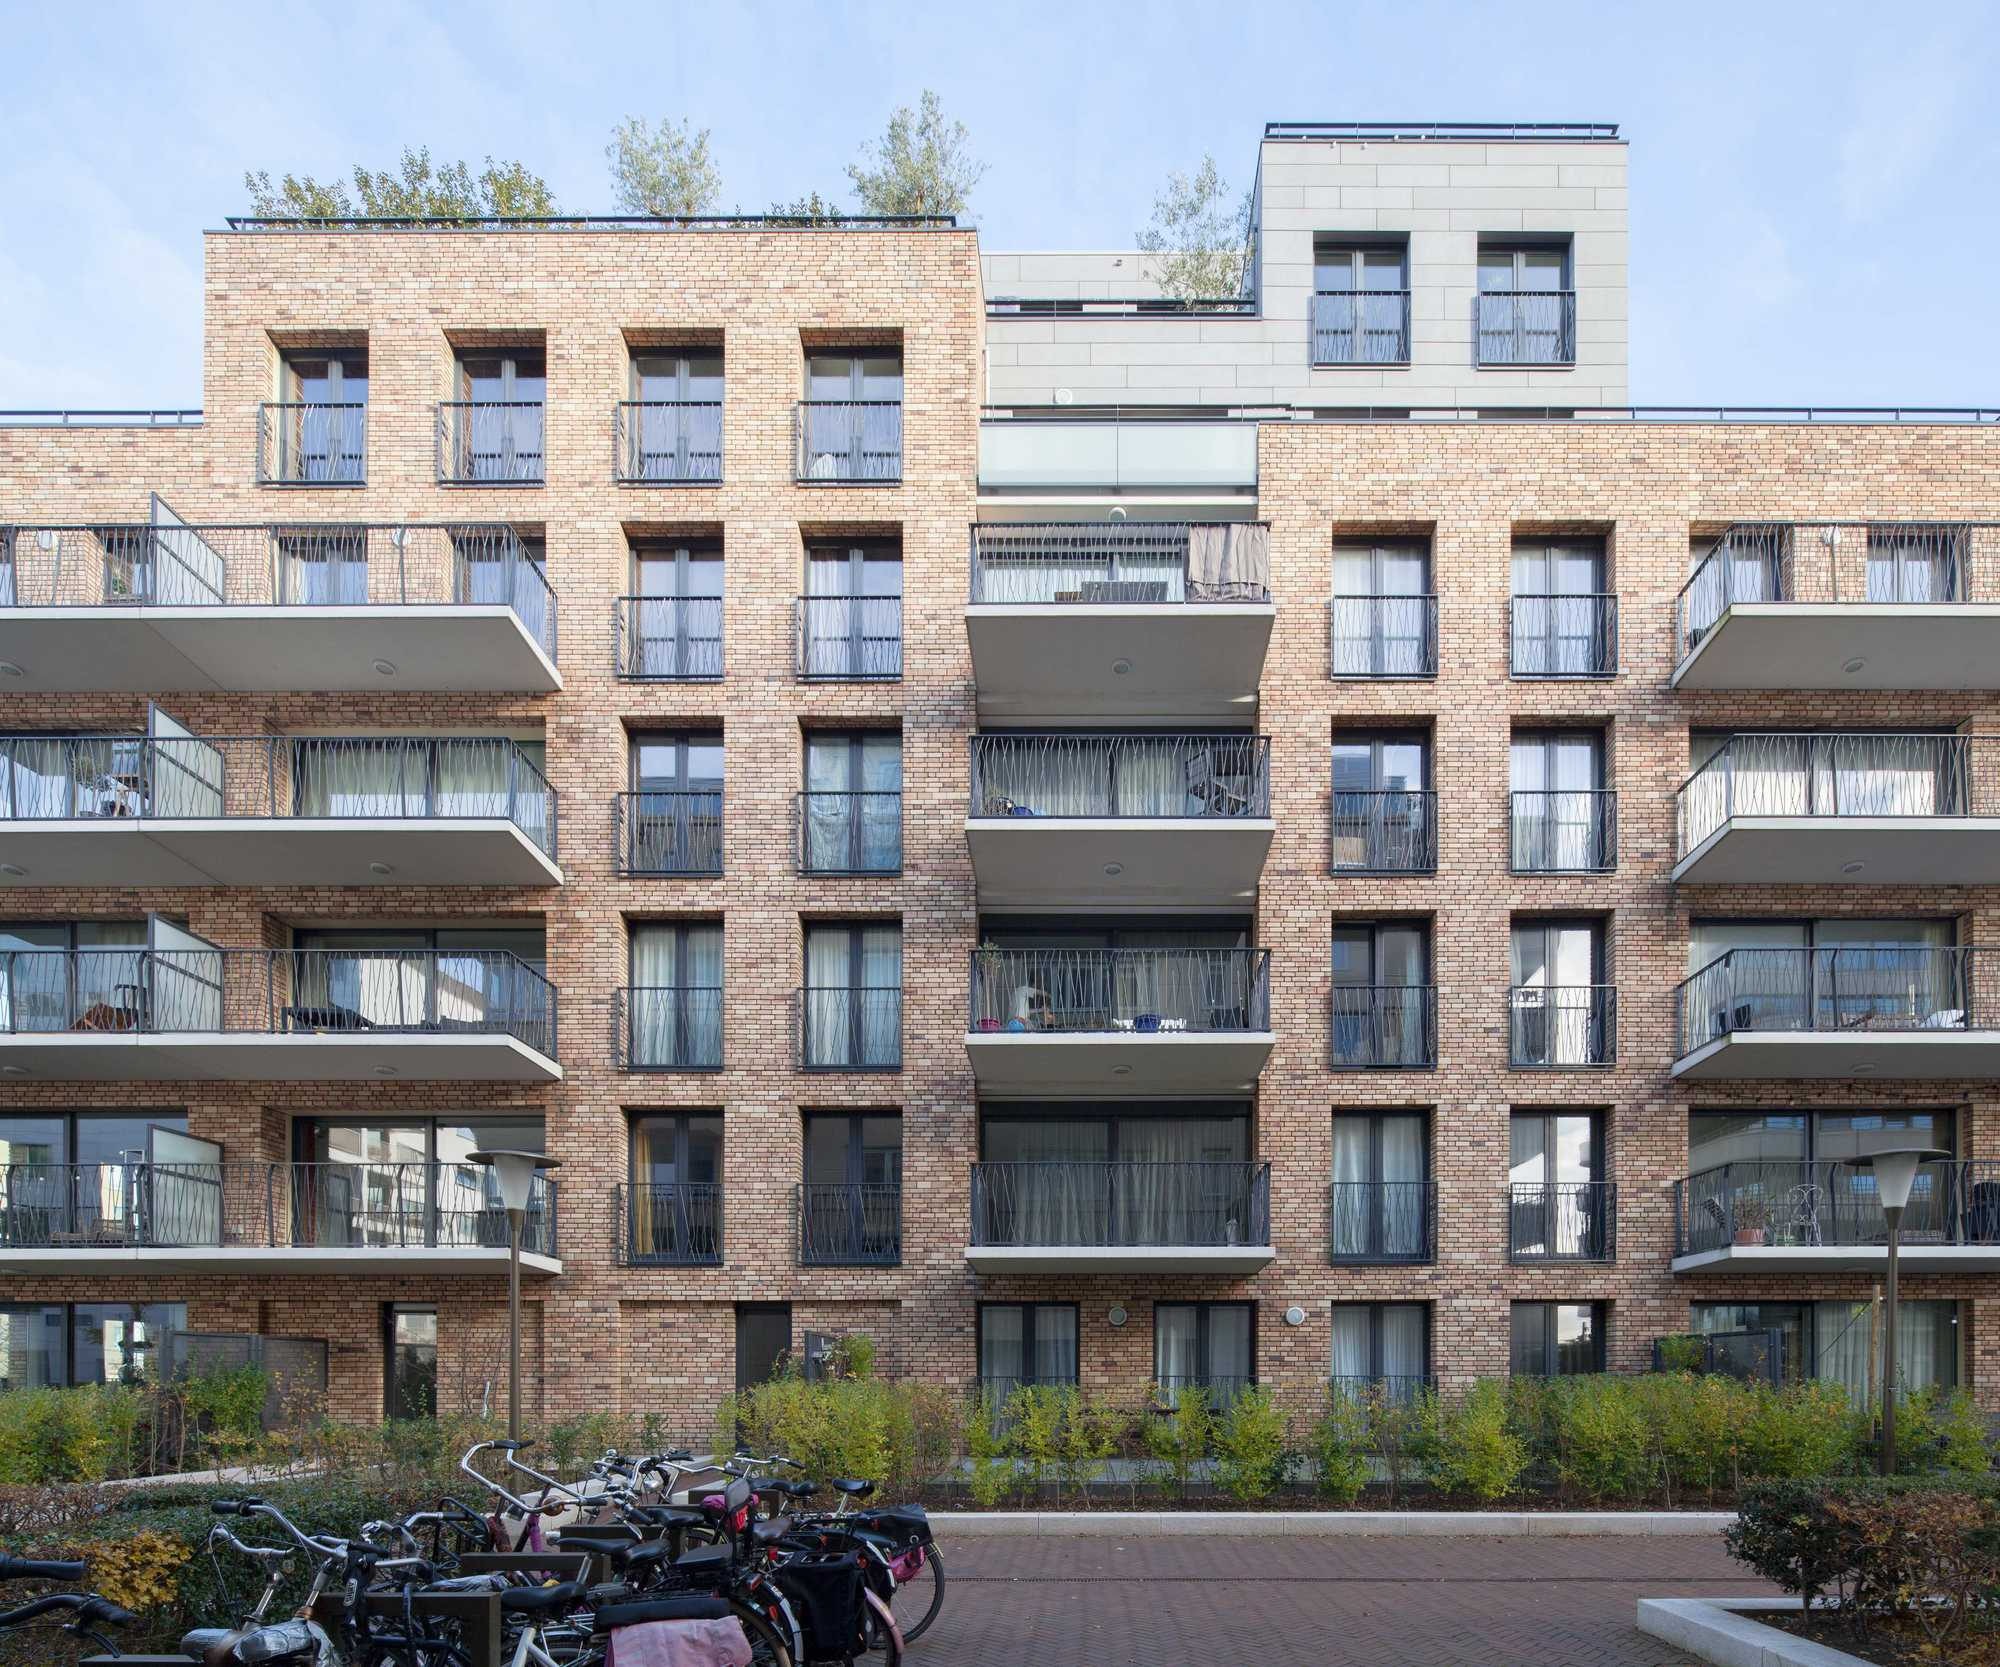 Apatments: De Halve Maen Apartment Building / Mecanoo